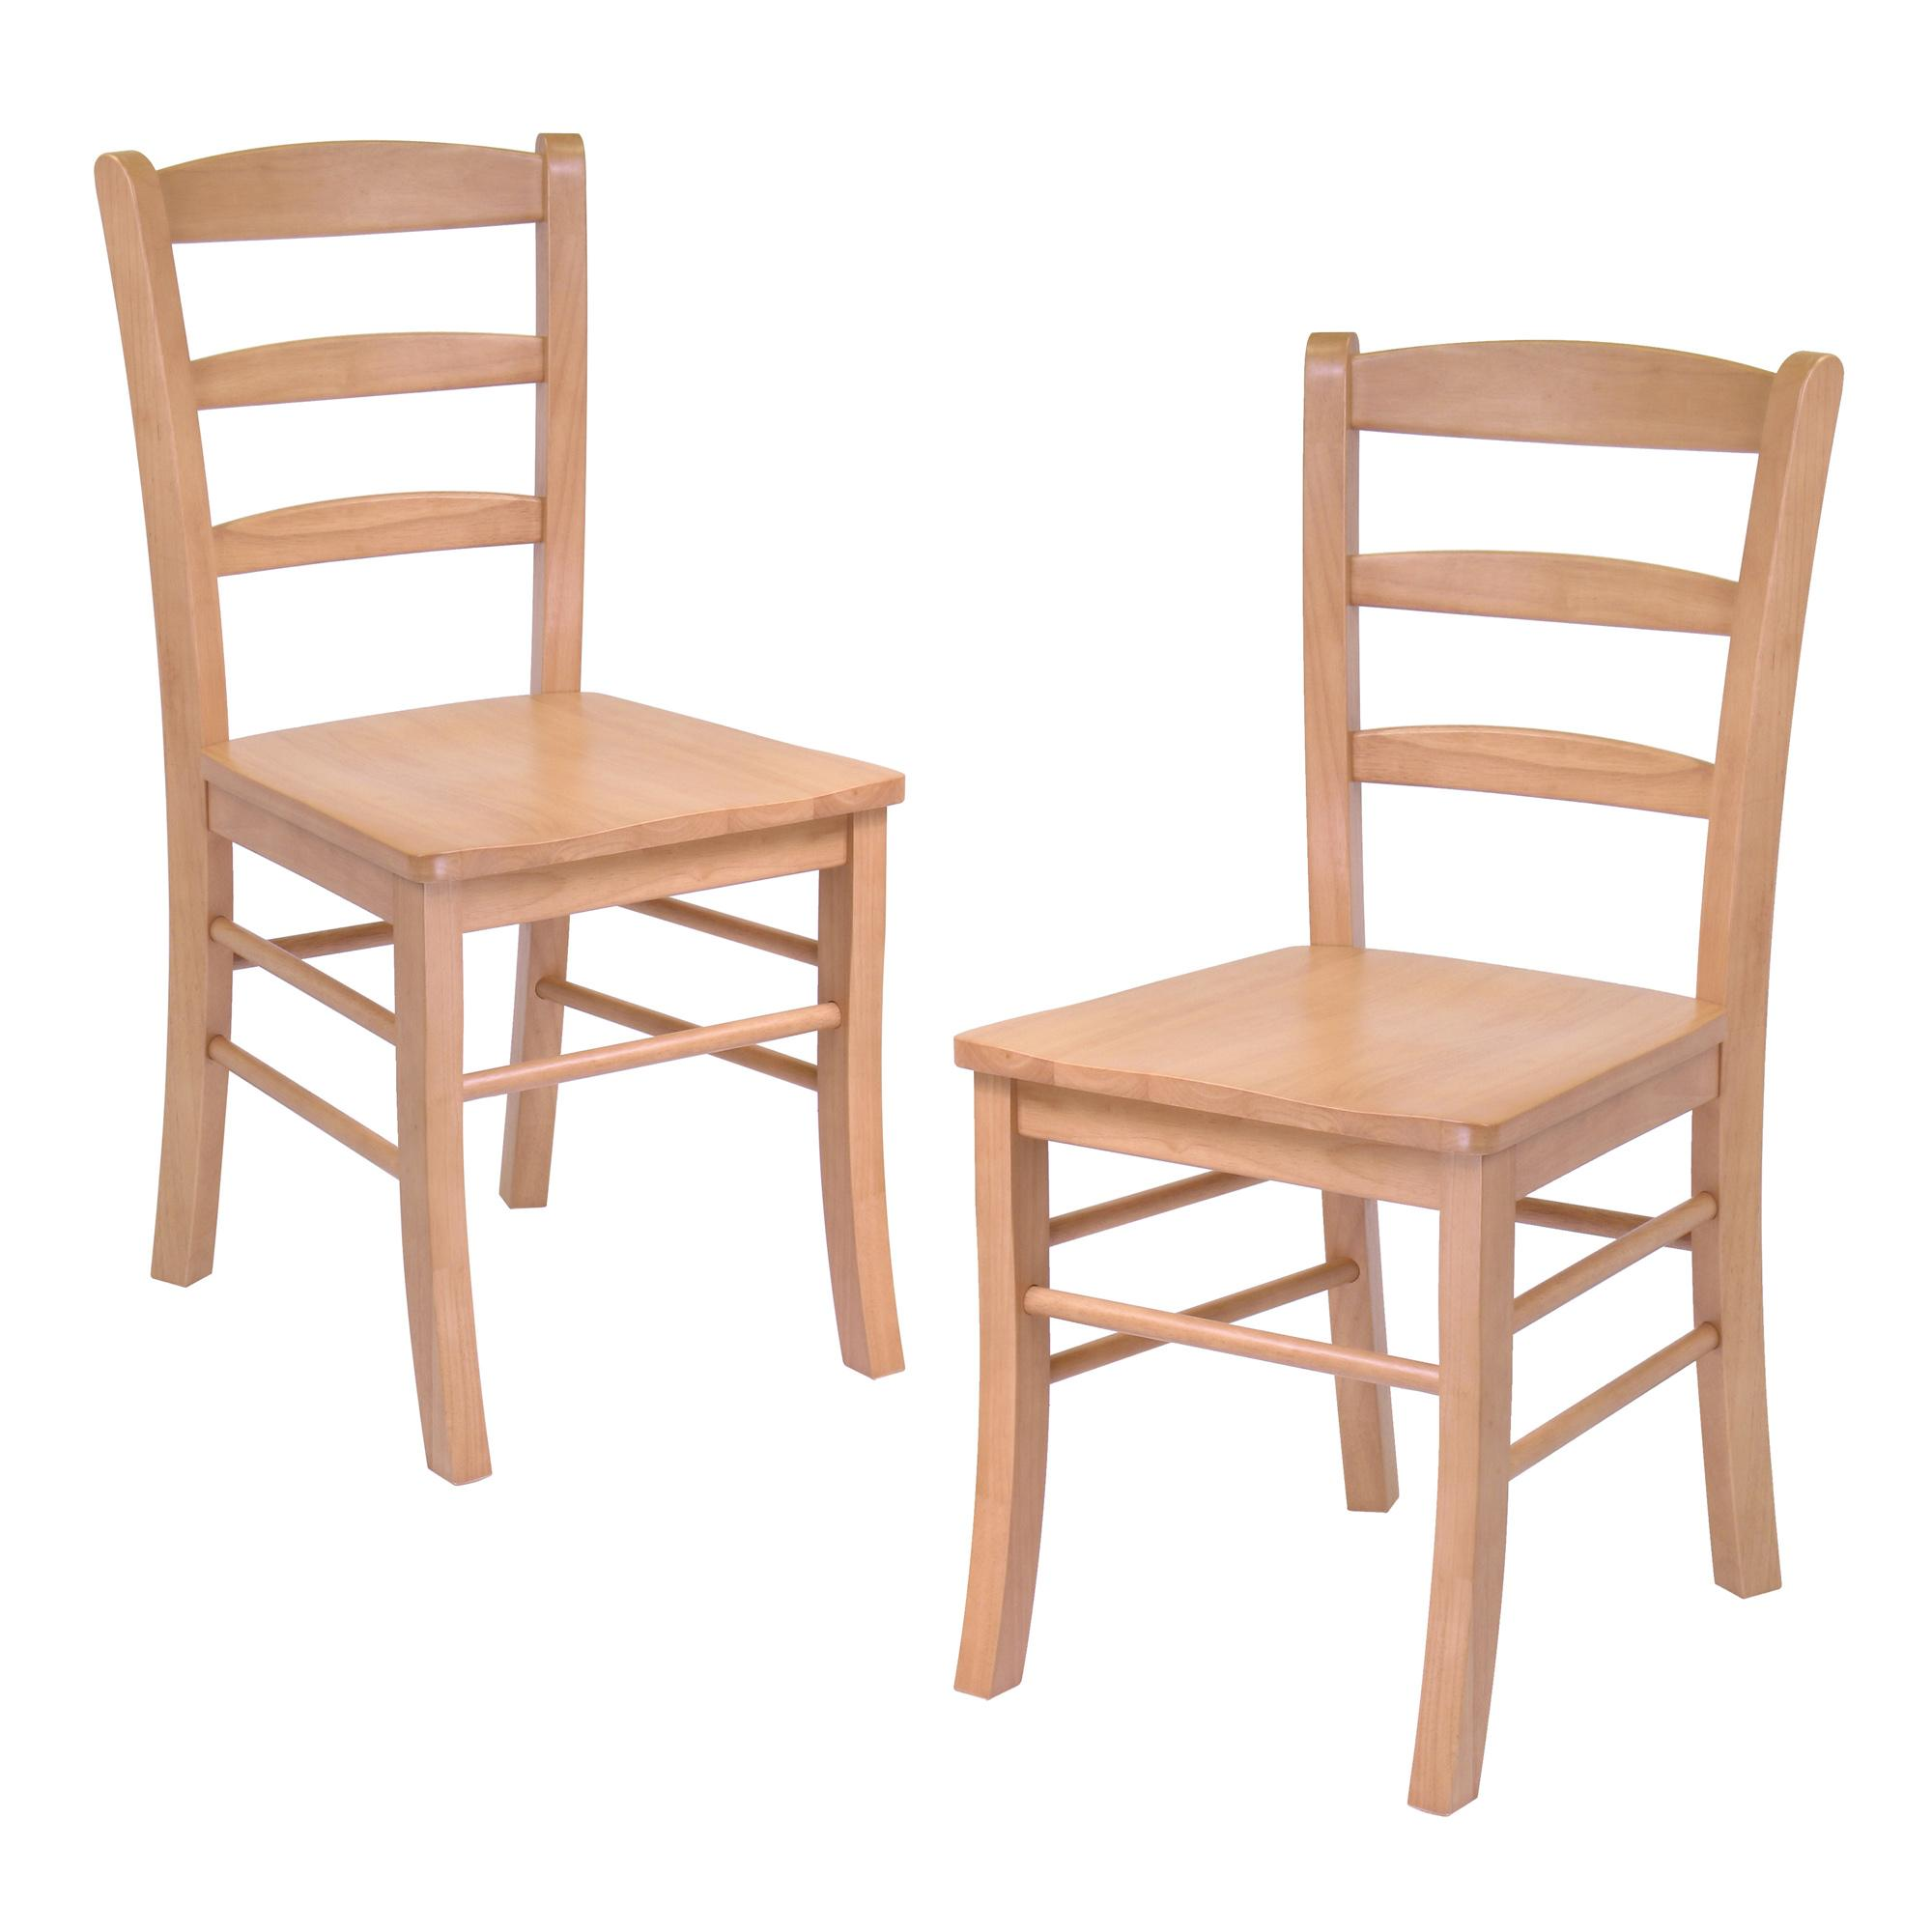 Winsome hannah dining wood side chairs in light oak finish for Wooden dining table and chairs